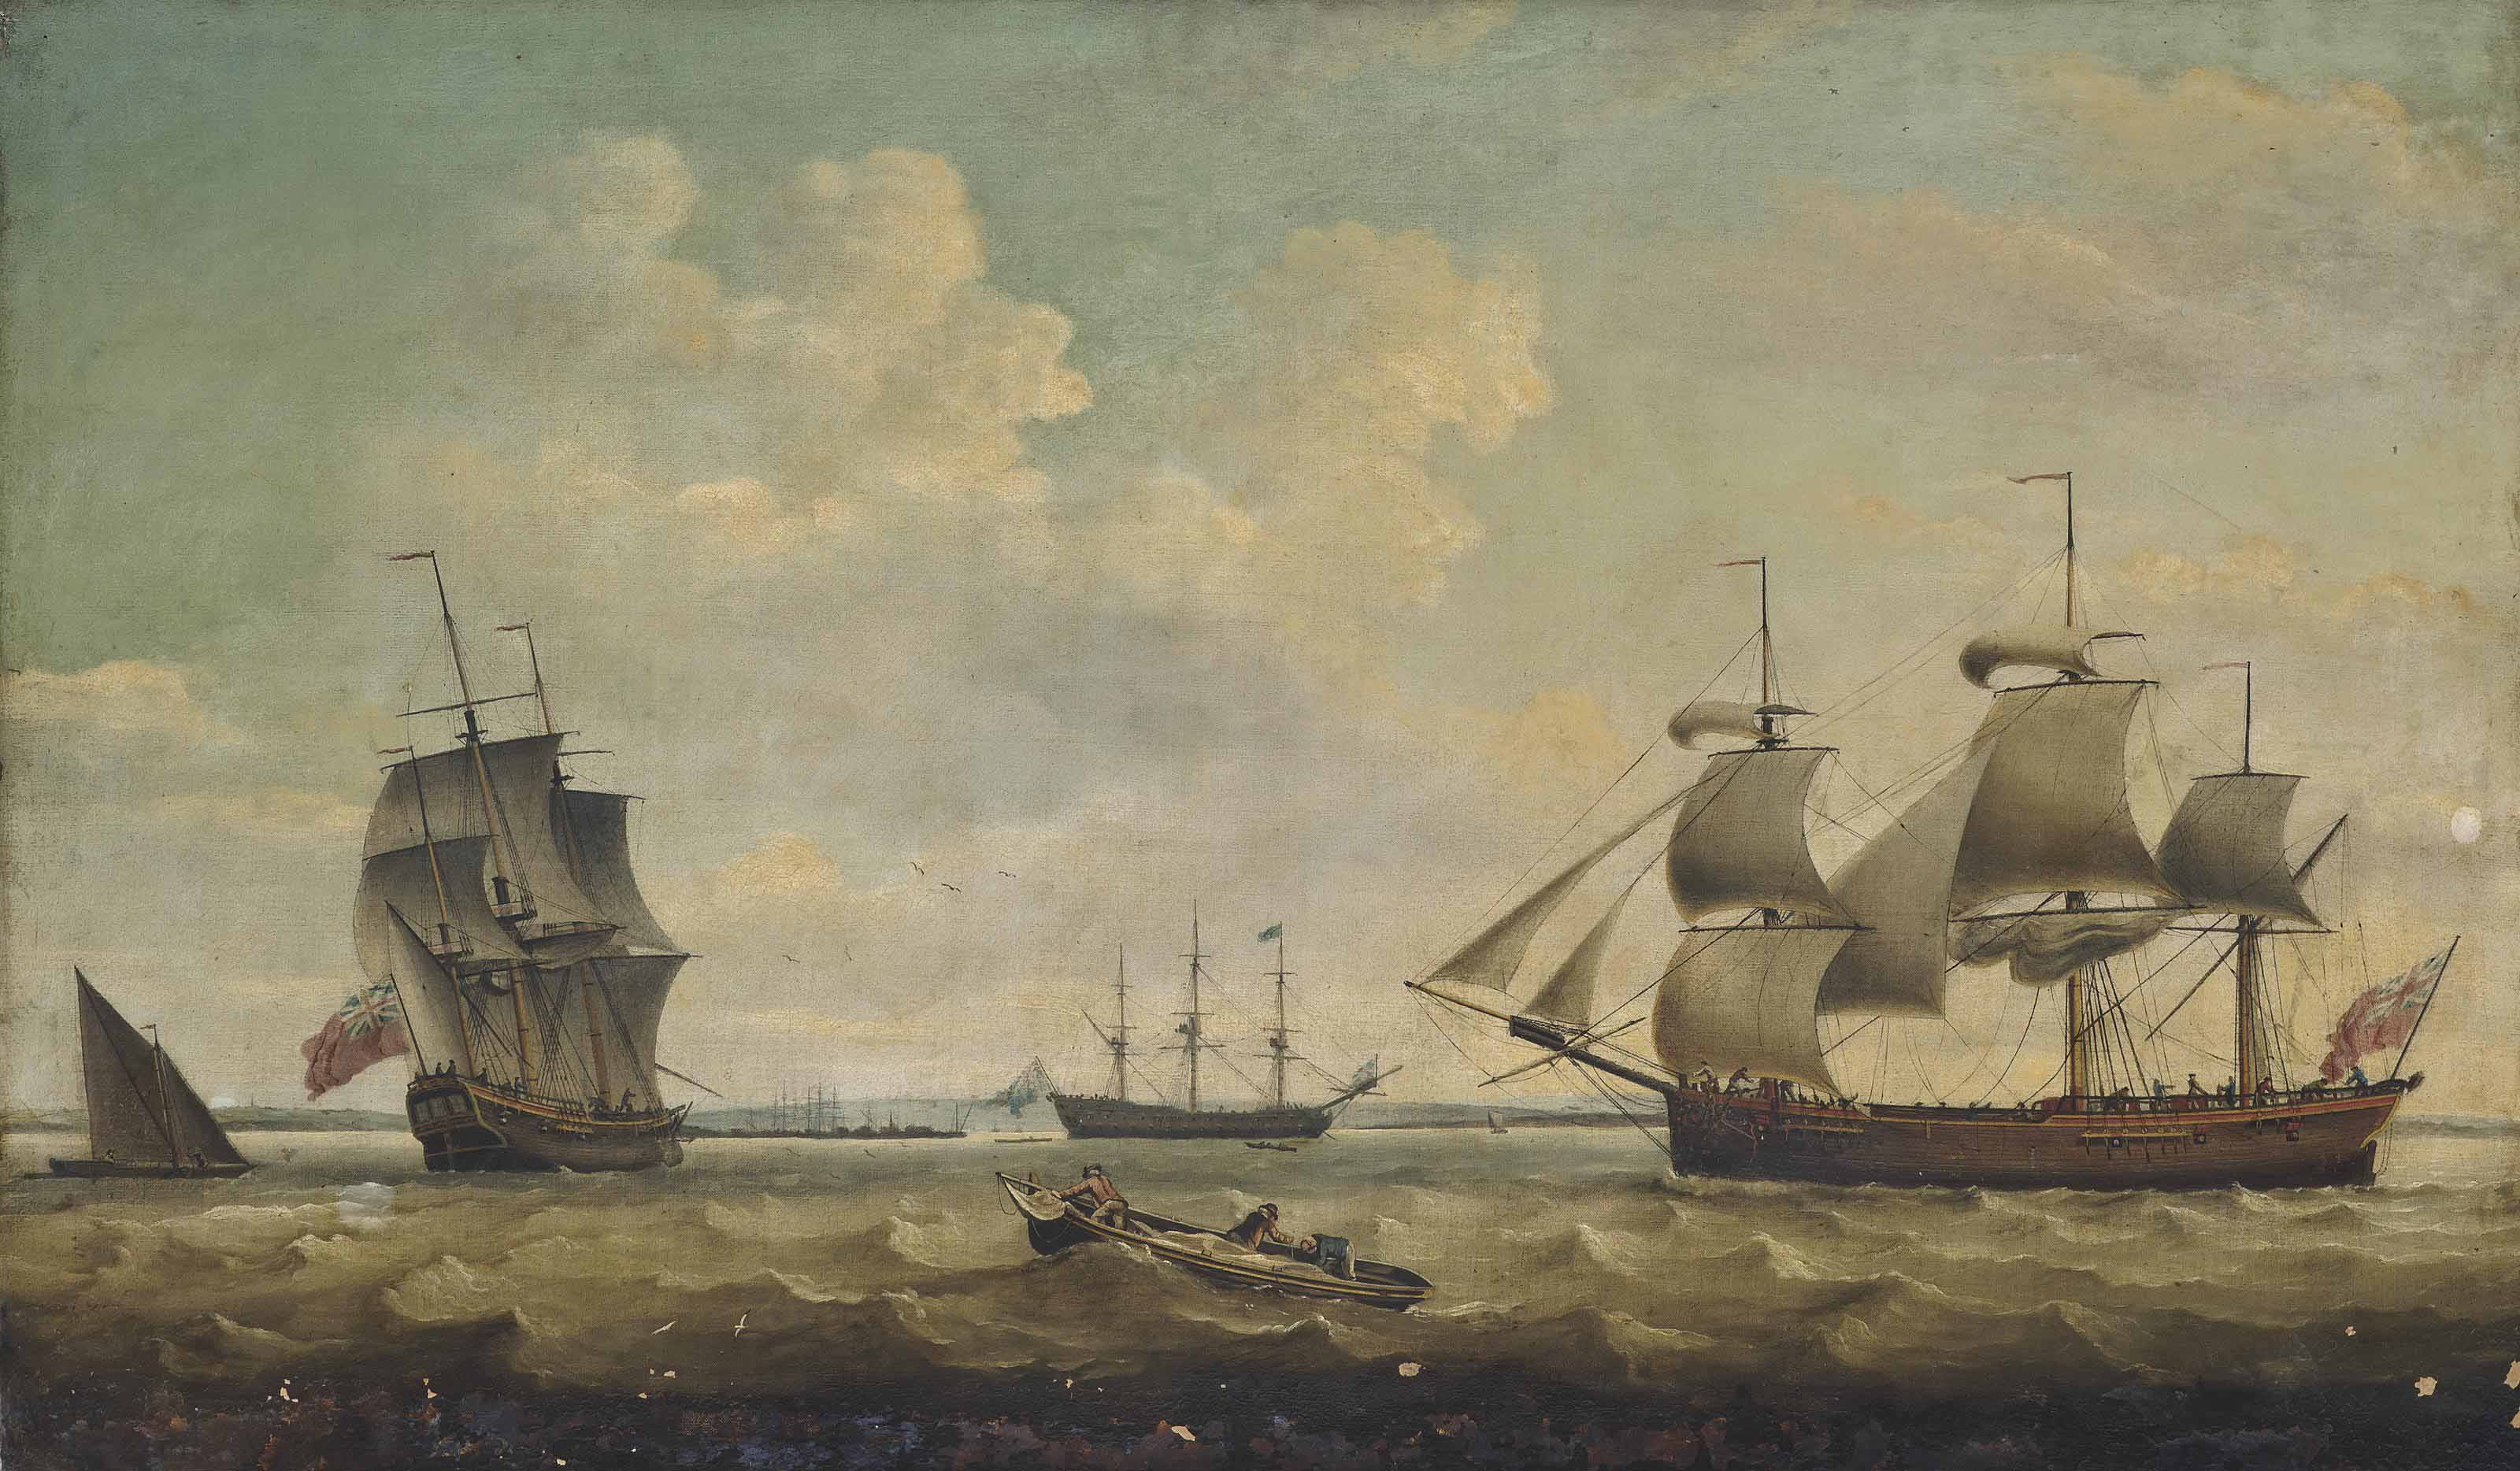 A merchantman, in two positions, off Harwich with a large Royal Navy warship lying at anchor inshore